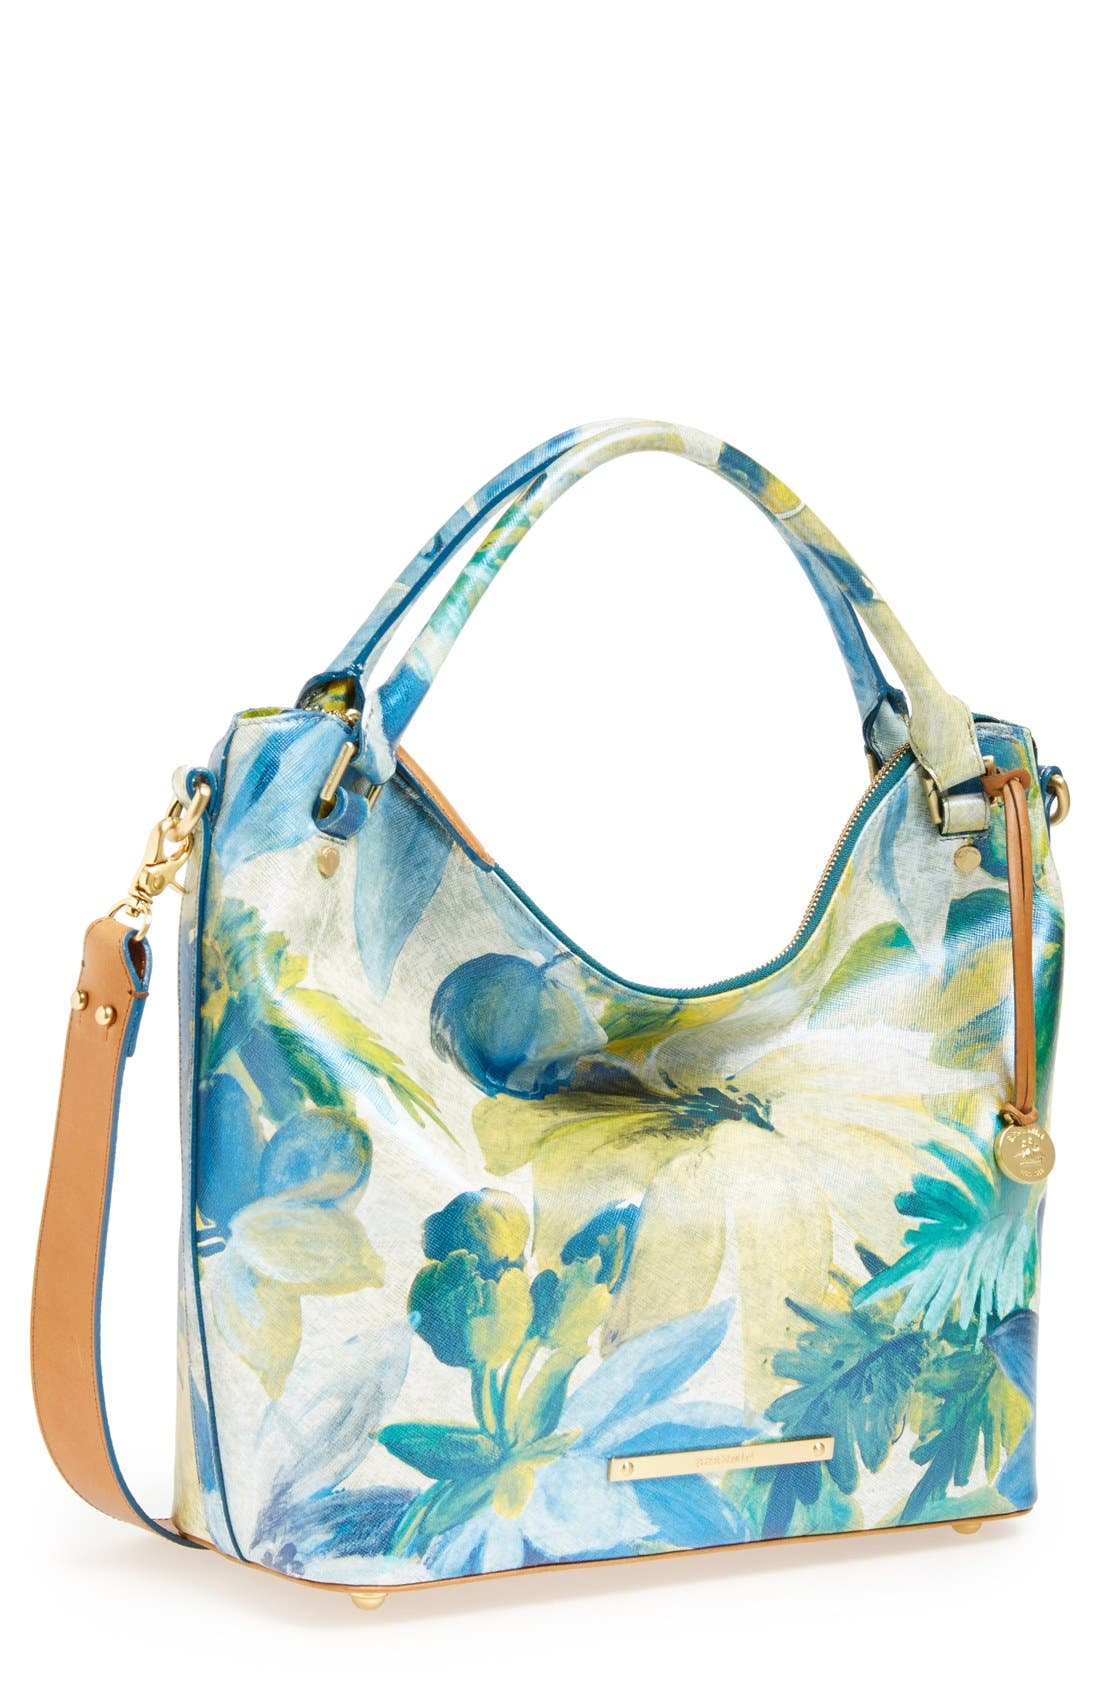 Alternate Image 1 Selected - Brahmin 'Norah' Tote